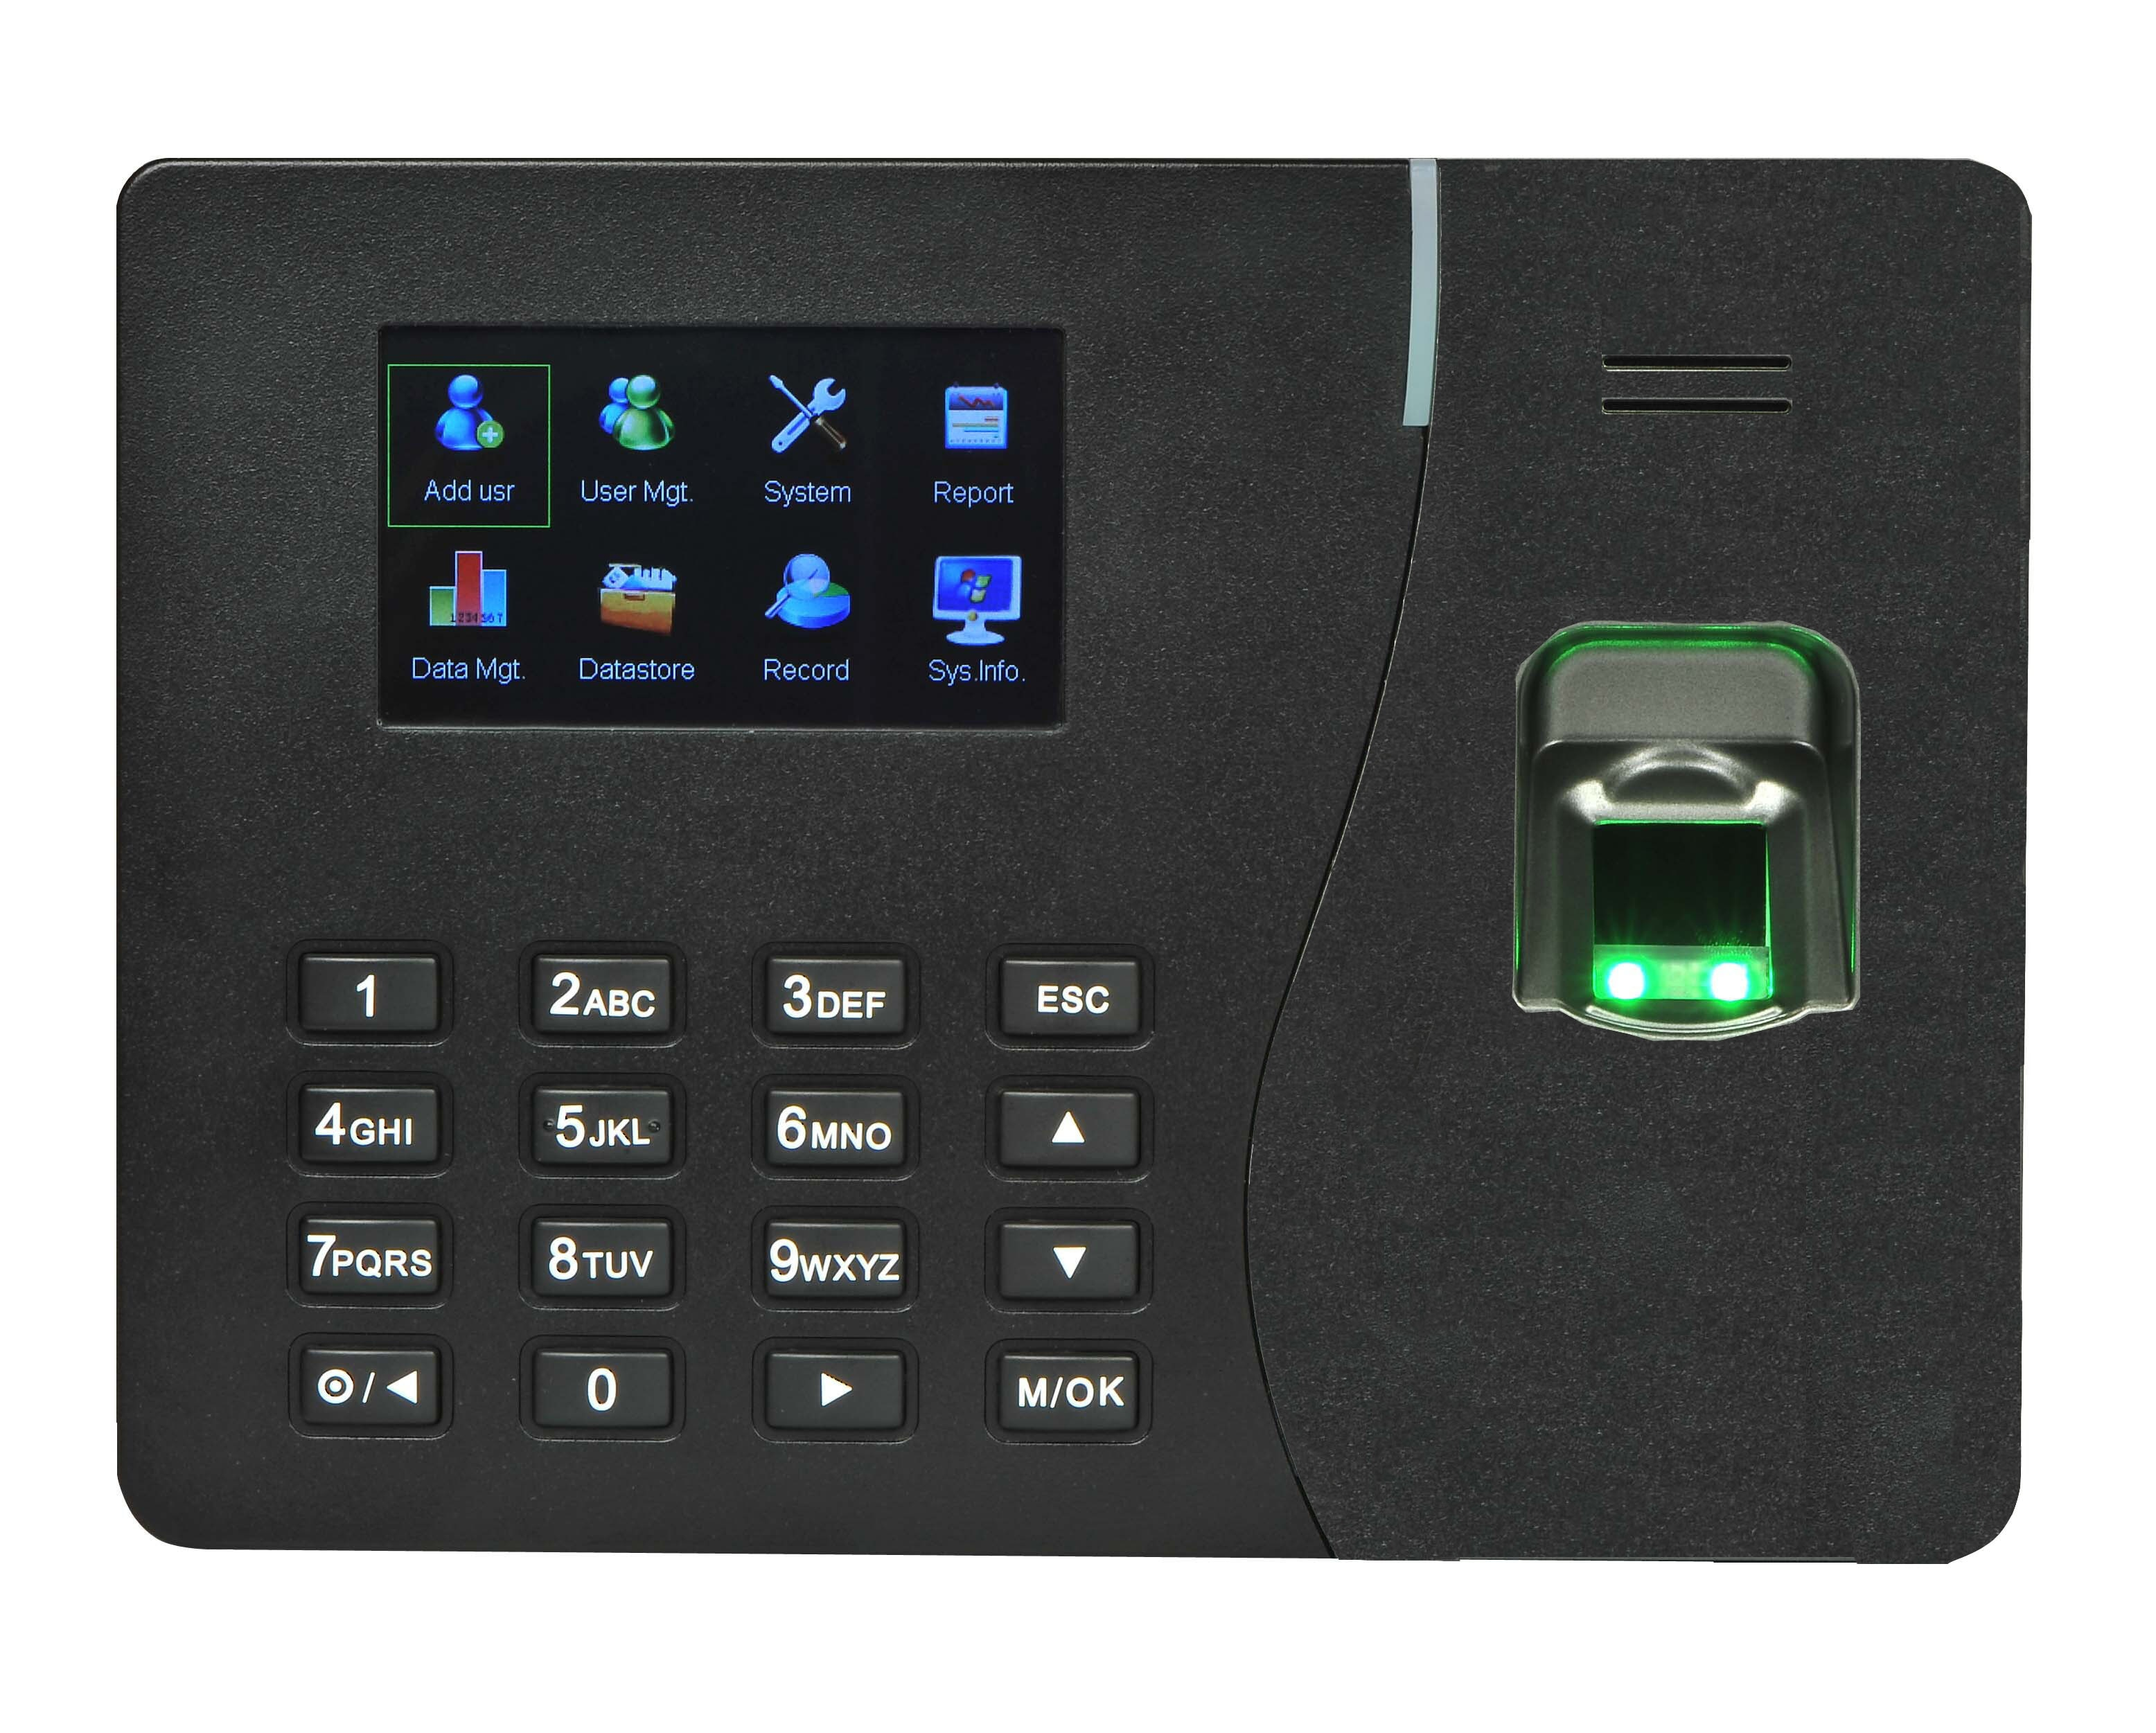 Fingerprint Attendance System  Description Keep track of who enters and exits your home or office with V23 fingerprint attendance machine.  It is a feature-rich biometric system that is equipped with various innovative technologies that helps you track and record every entry and exit of authorised individuals and thus keep a tab on attendance. This biometric system has a huge storage capacity and in comparison to its high demand, it comes at an affordable price. Its CPU is powerful. It has a clear display and uses advanced technology. The  biometric system definitely strengthens the safety and security be it home or your workplace. This immensely useful system is battery operated and therefore, can function even during power cuts. Storage Capacity   The biometric system has an excellent memory capacity. The device can store up to 500 fingerprint templates and has a transaction storage capacity of almost 50000 Logs. It also has a card reader which again adds to its storage capacity.   Audio/Visual This V23 biometric system has 7.1 cm (2.8) TFT colour display. The system has 5 function keys. There are also red or green LED indicators along with mini speakers that help in the recognition of the fingerprints.   Communication Its communication features are USB, TCP/IP, and optional features like GPRS, Wi-Fi, and GPRS+ GPS. It uses various other features to communicate as well.   Power and Environment It requires a power supply of DC 5 V, 1 Amp. The operating temperature of this device ranges from 0 to 45 degrees Celsius. And the operating humidity ranges from 20 to 80 per cent.   Access Control It is equipped with different access control features like 5V relay for various locks, support fire alarm, door-bell, door sensor, anti-pass back and others.   Compatibility V23 Biometric System is compatible with software and SDK Major Applications V23 is not only useful at home and shops but also at various other places like schools and colleges for attendance purposes. It can be used at pubs and clubs to keep a track of the crowd that comes in and goes out.